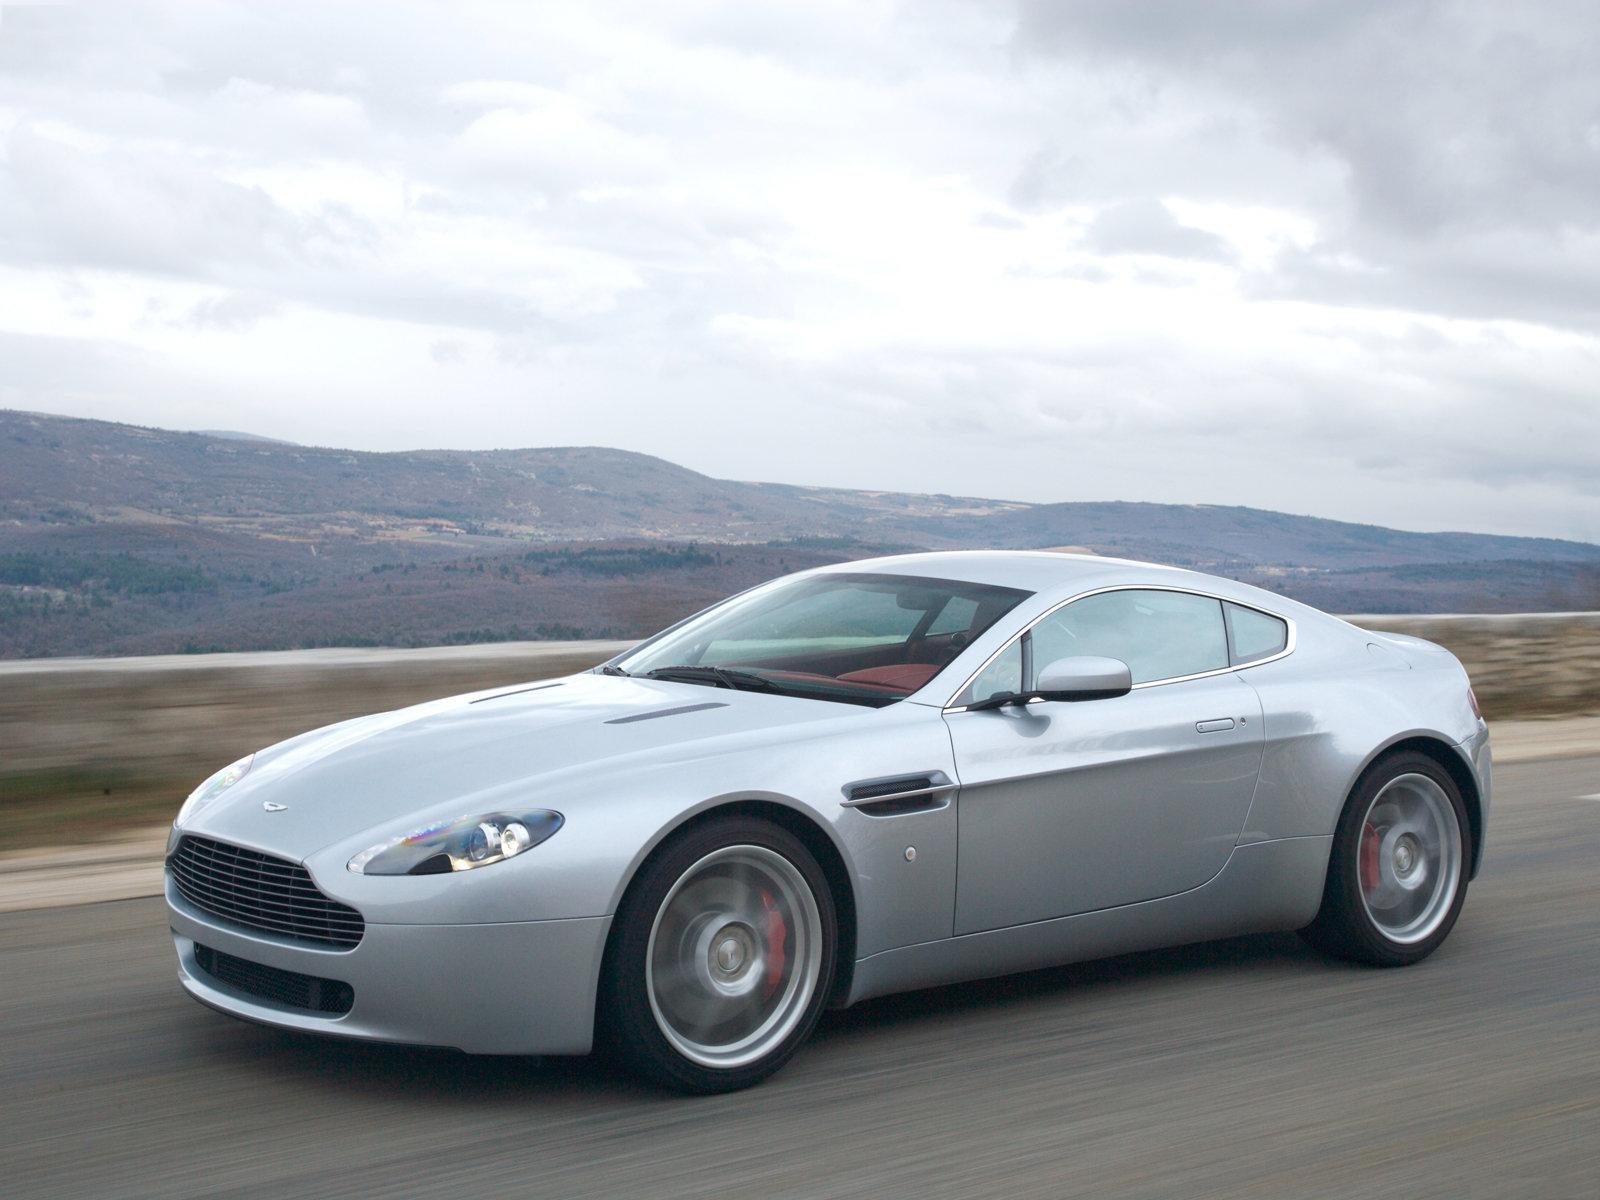 aston martin v8 vantage 2007 1600 x 1200 download close. Cars Review. Best American Auto & Cars Review